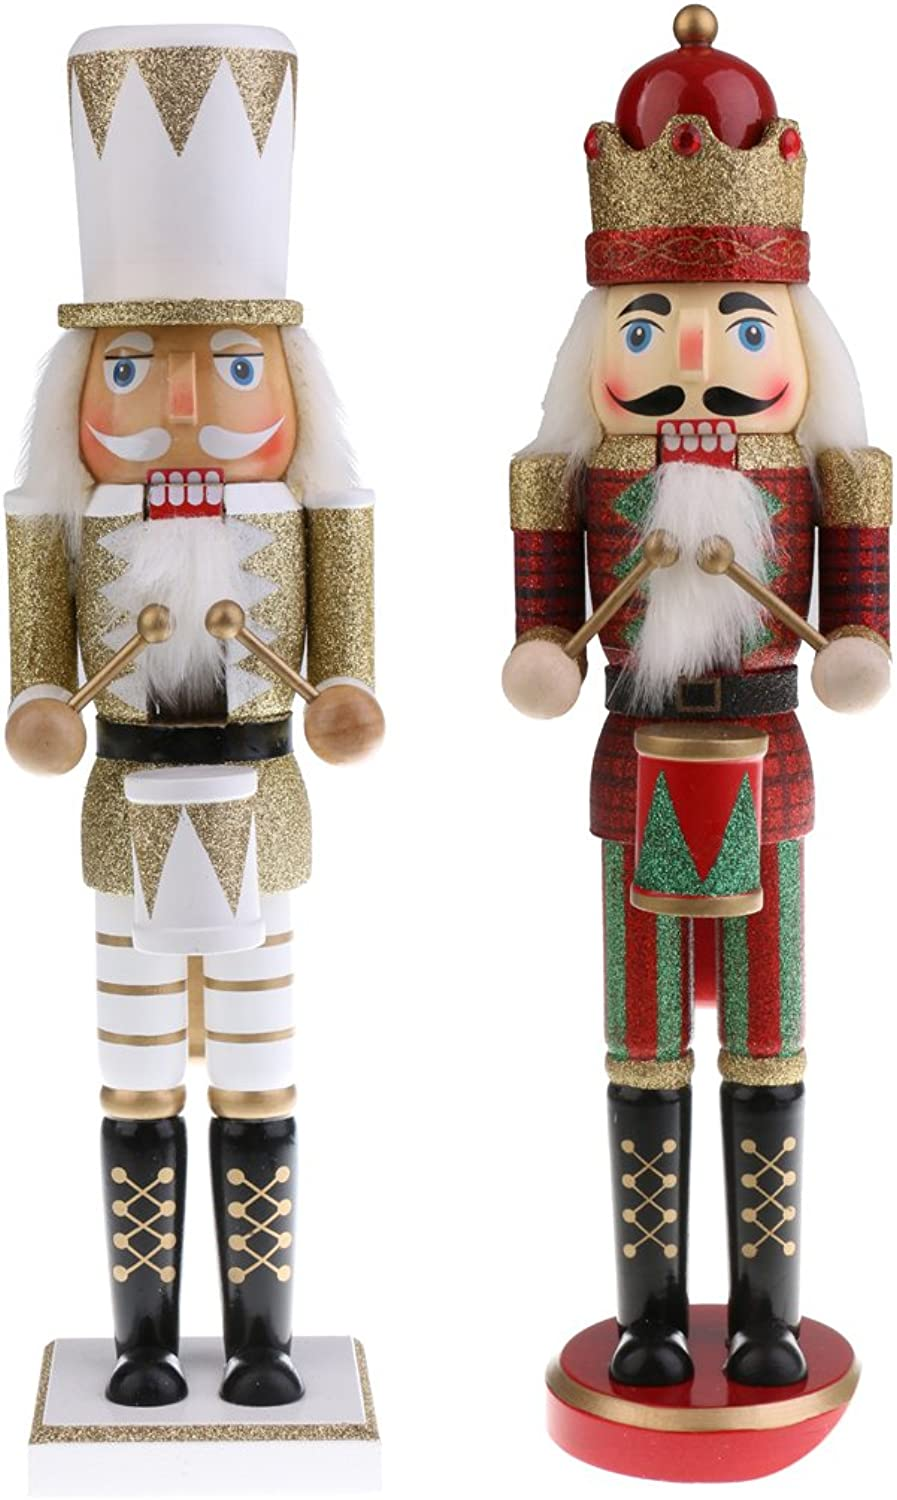 Baosity 2X Vintage 38cm Wood Glitter Drummer Nutcracker Home Decor Xmas Toy Gift New